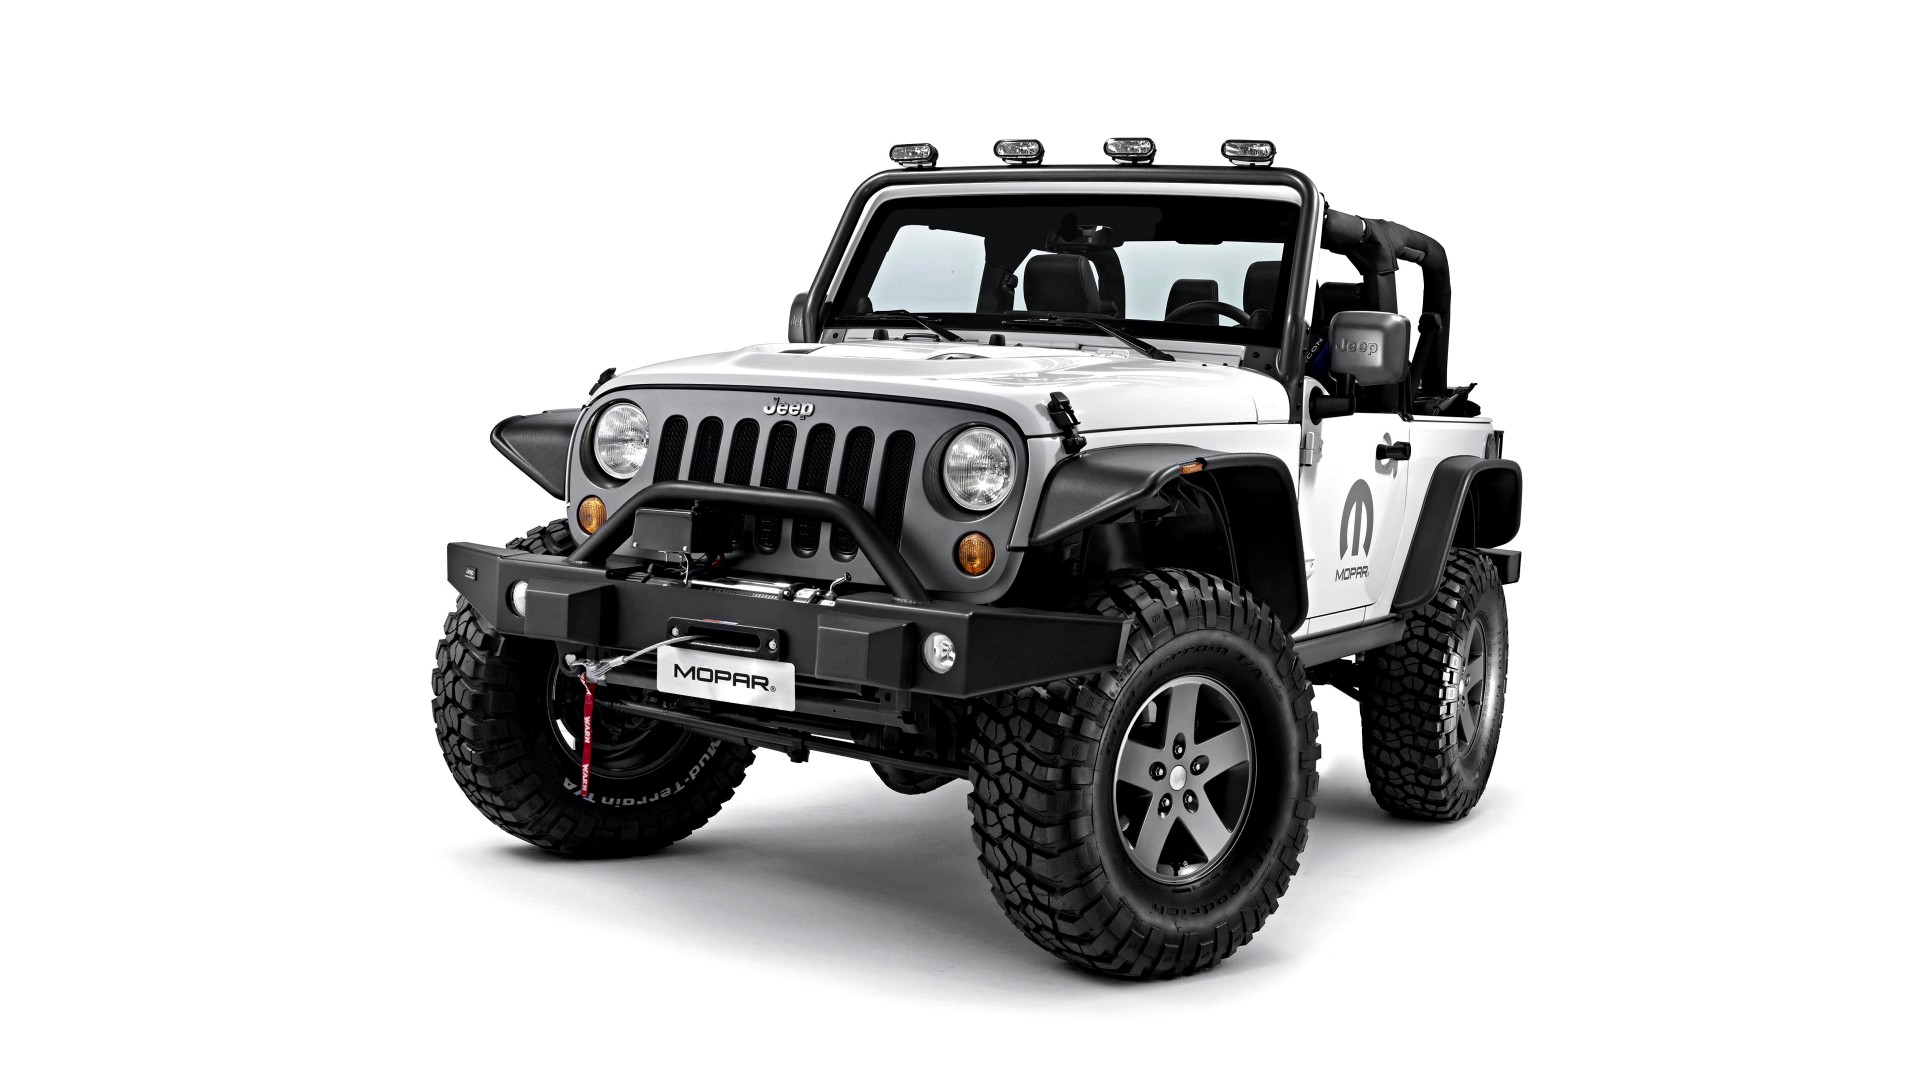 Jeep Car Images Hd: 2015 Jeep Wrangler Unlimited Mopar Wallpaper